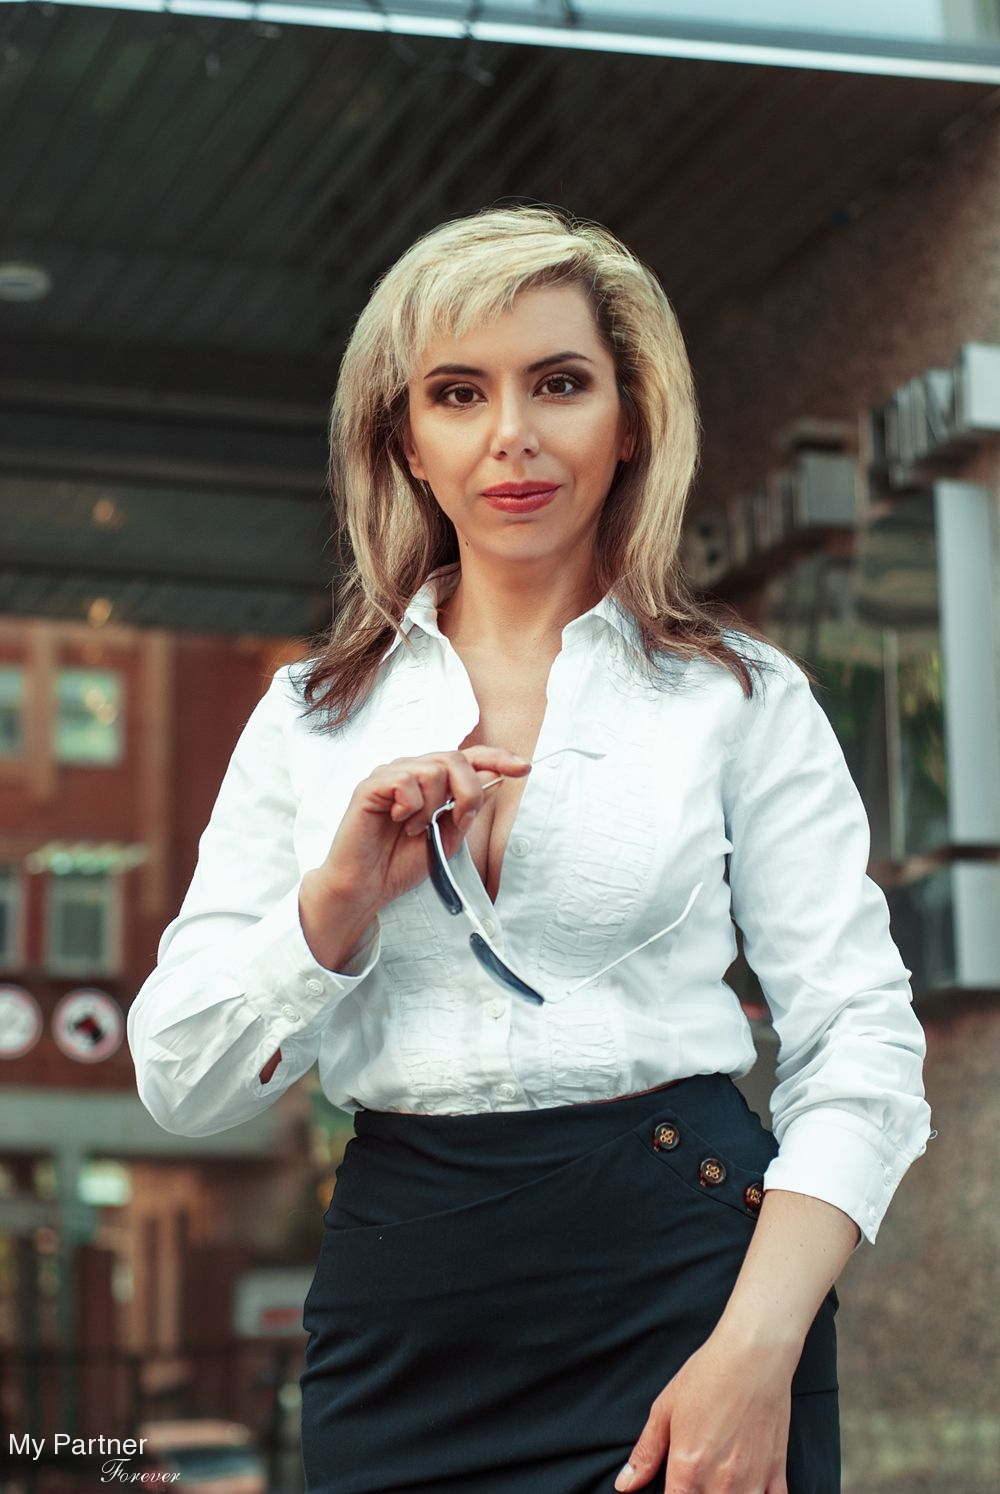 dating poltava ukraine I am a calm and positive person the one who loves to laugh and make others laugh with me :) active lifestyle, beautiful look and positive thoughts are always at my side.